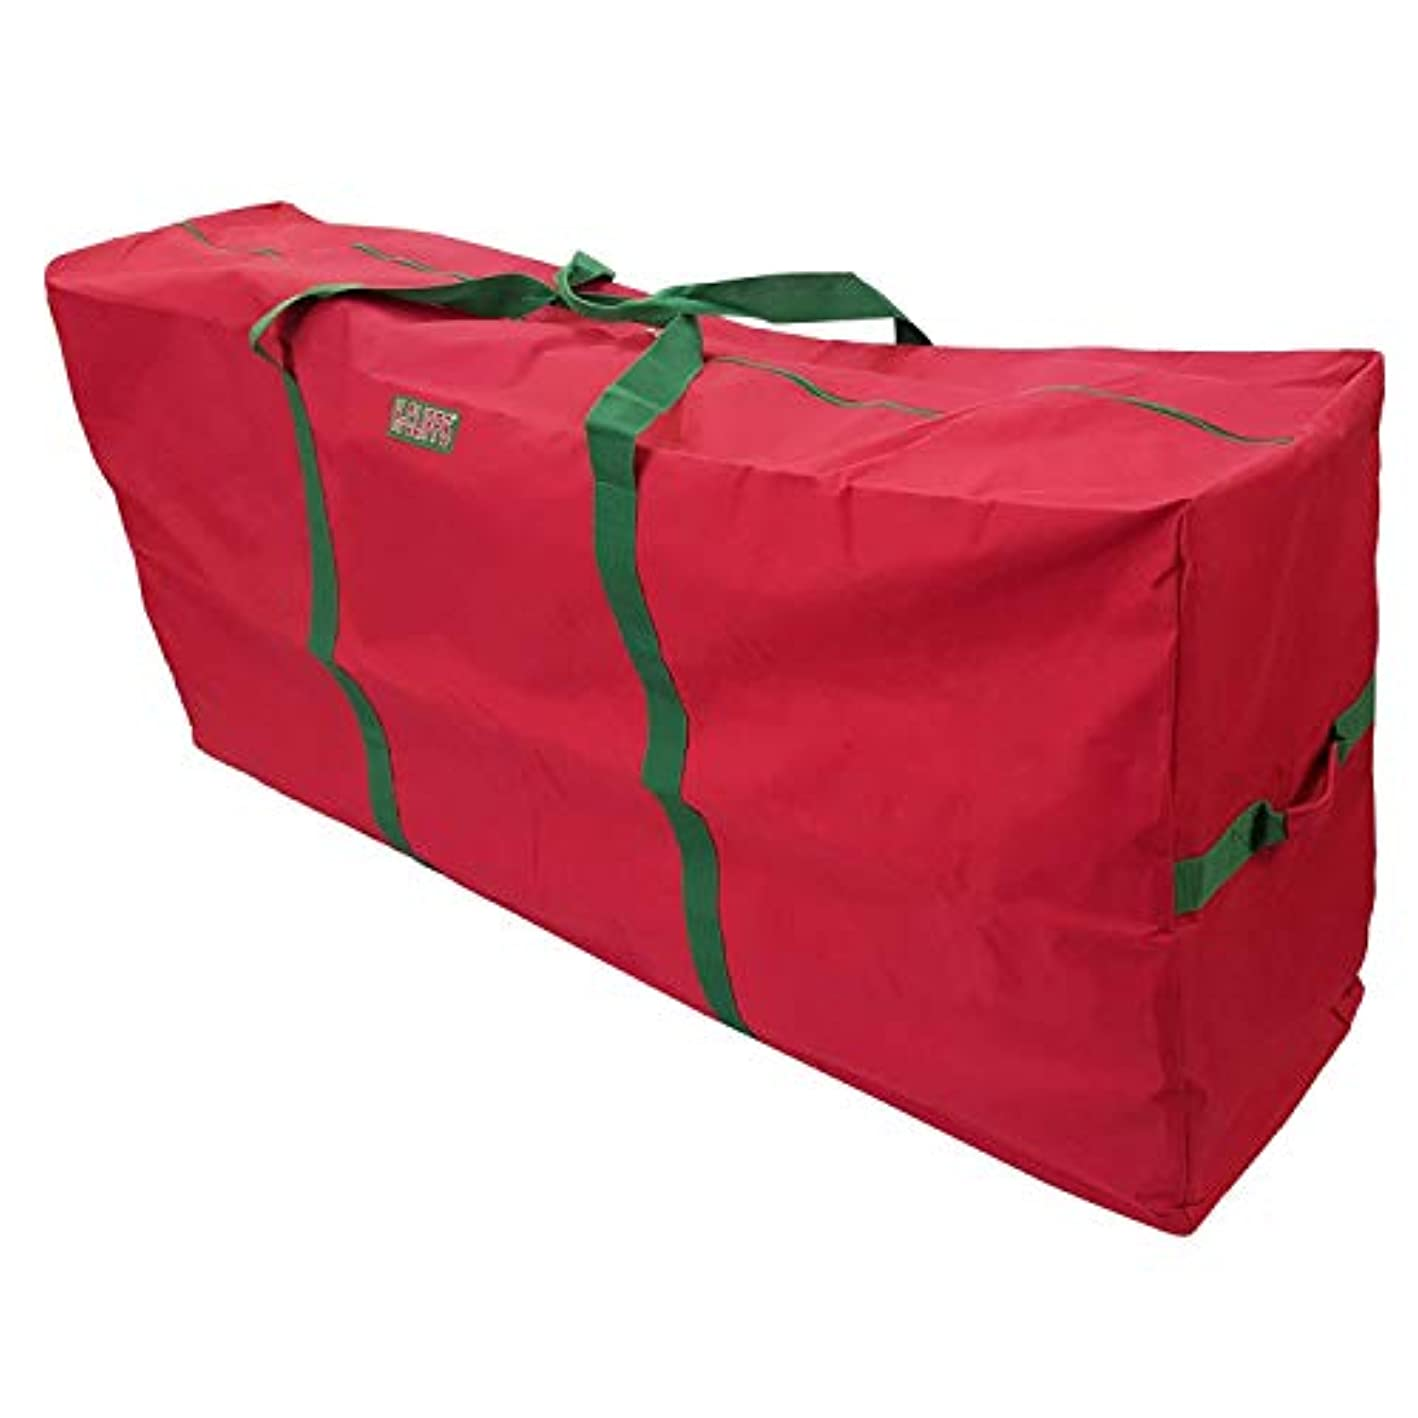 K-Cliffs Artificial Christmas Tree and Ornament Storage Bag | Fits Up to 7 ft Trees | 48